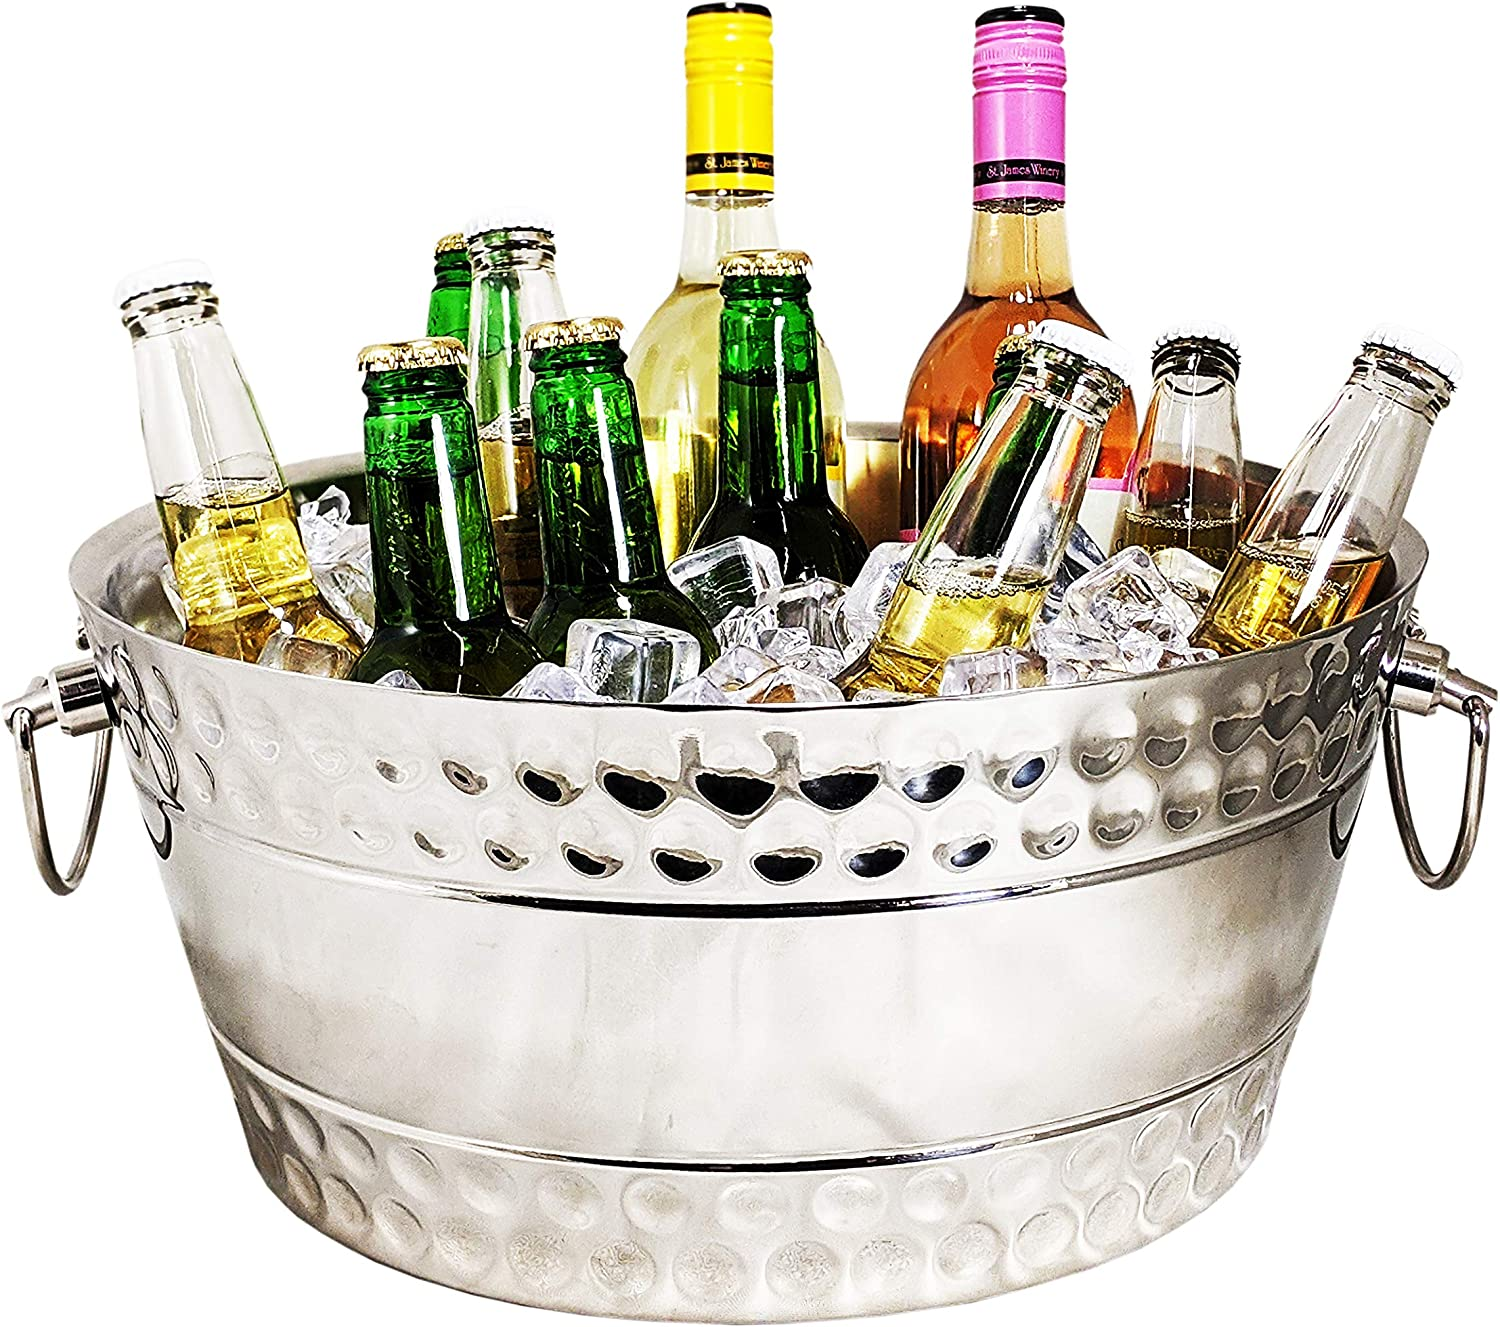 BREKX Hammered Stainless-Steel Beverage Tub, Double-Walled Insulated Anchored Bolt Drink Tub & Ice Bucket with Double Hinged Handles, Drink Chiller for Parties, 12 Quarts